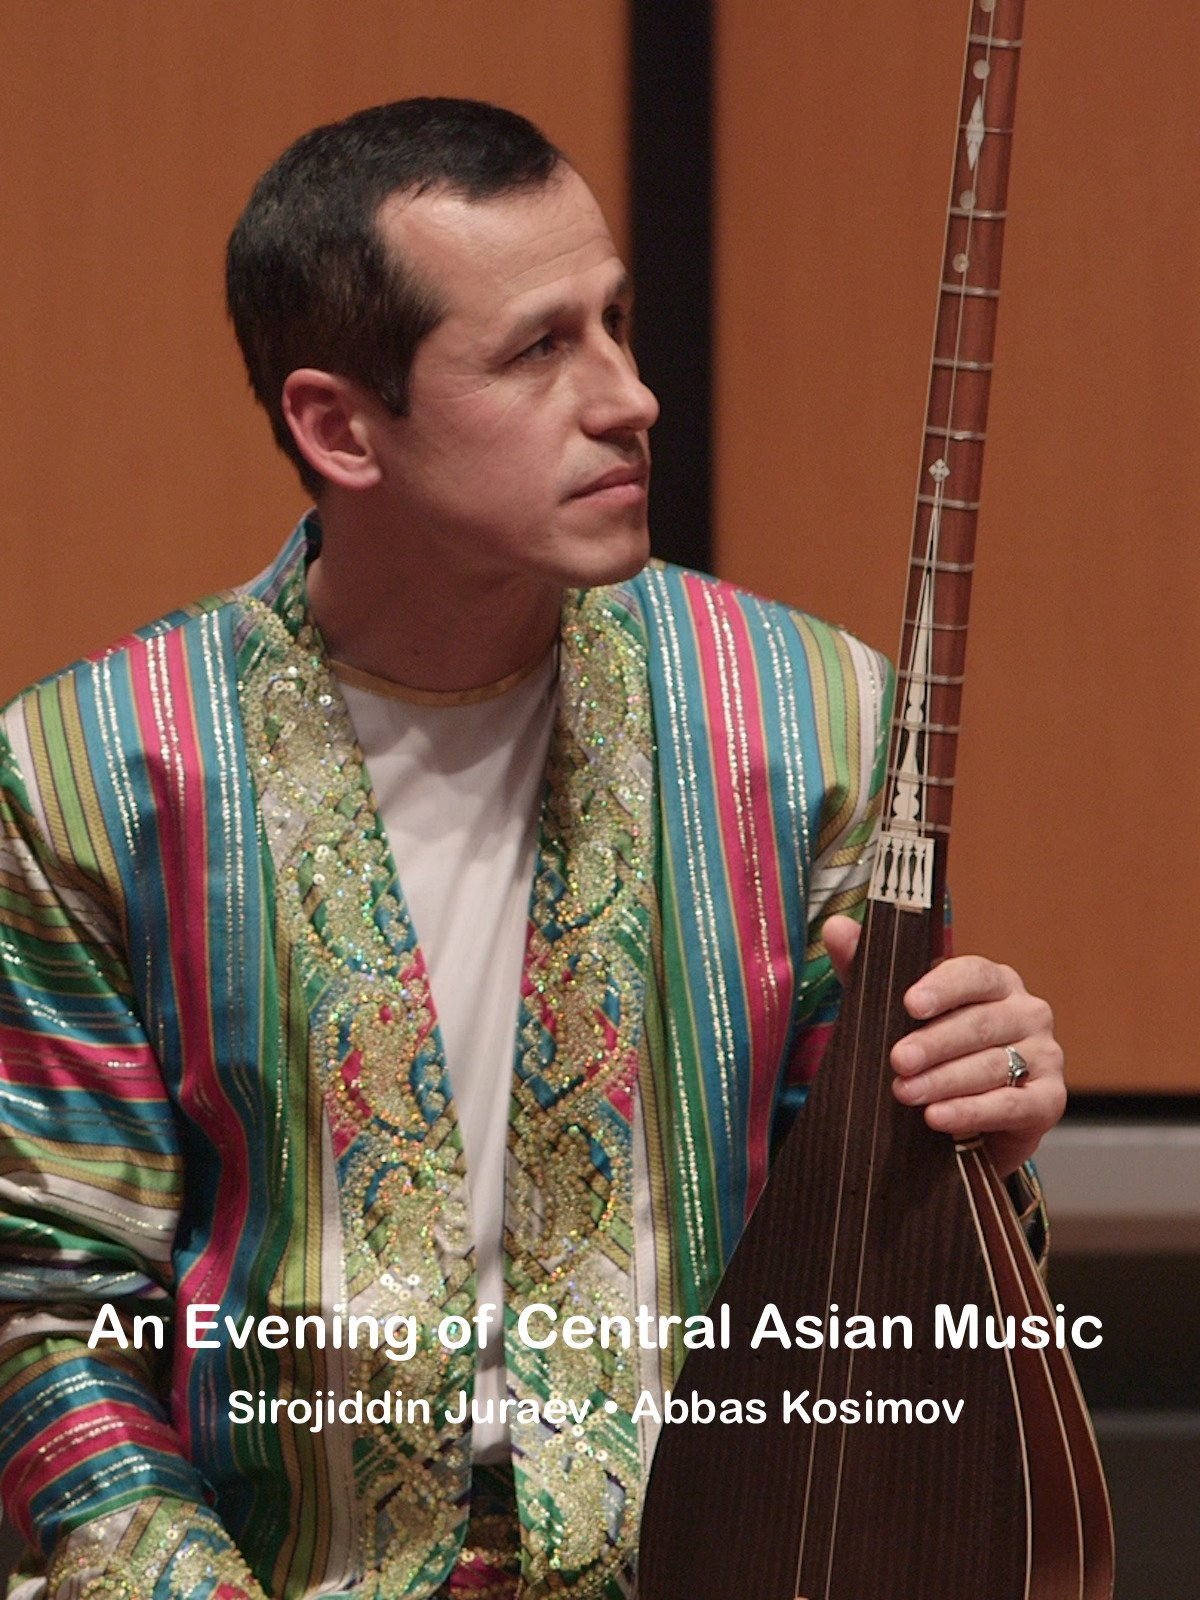 An Evening of Central Asian Music